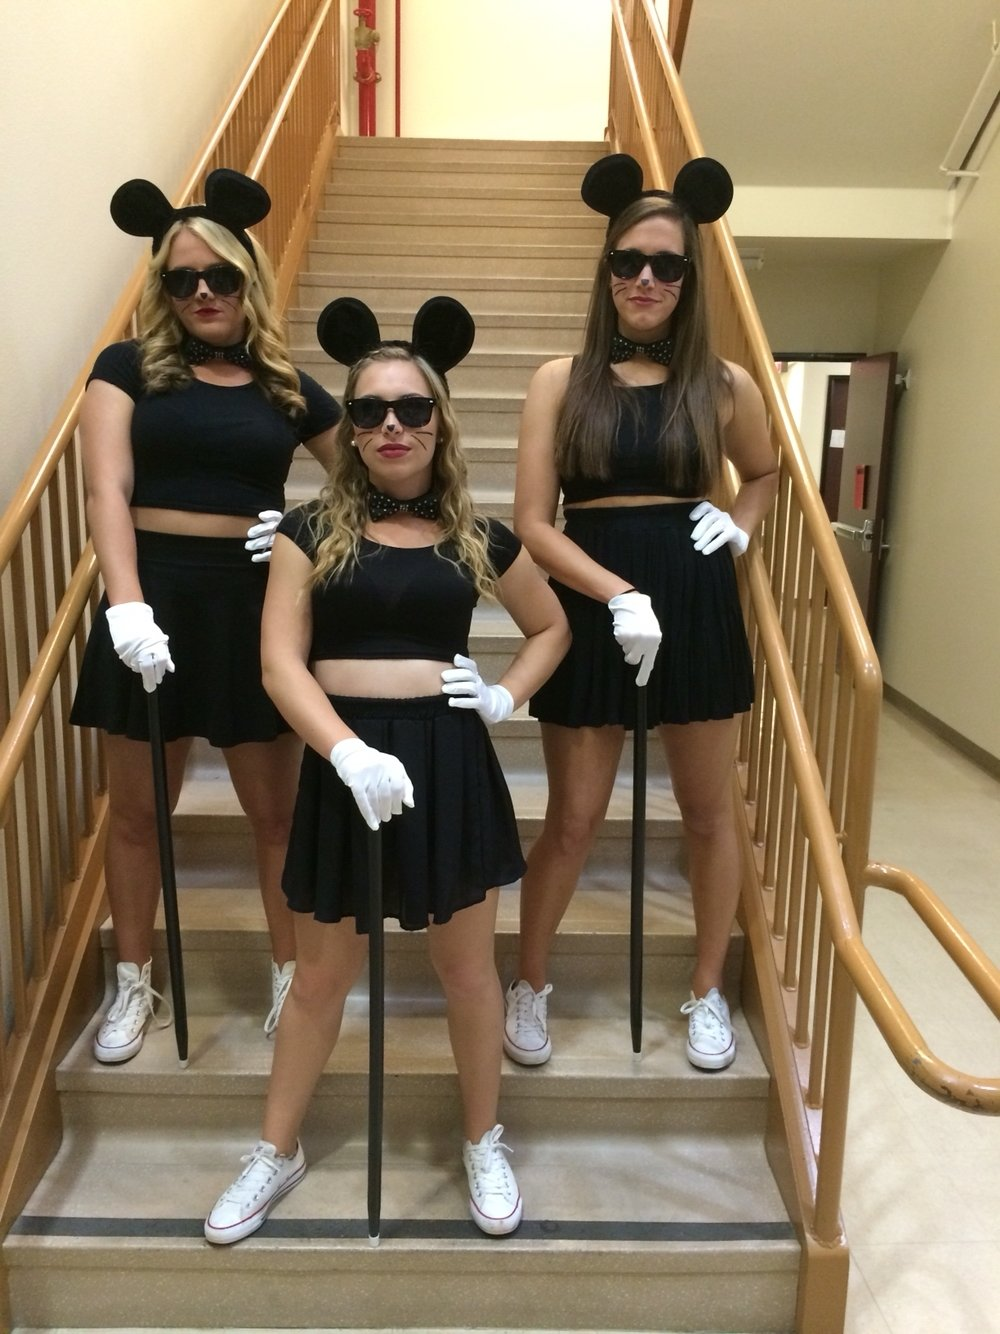 10 Awesome Halloween Costume Ideas For 3 People think i might do this with my friends for halloween also is a great 1 2020